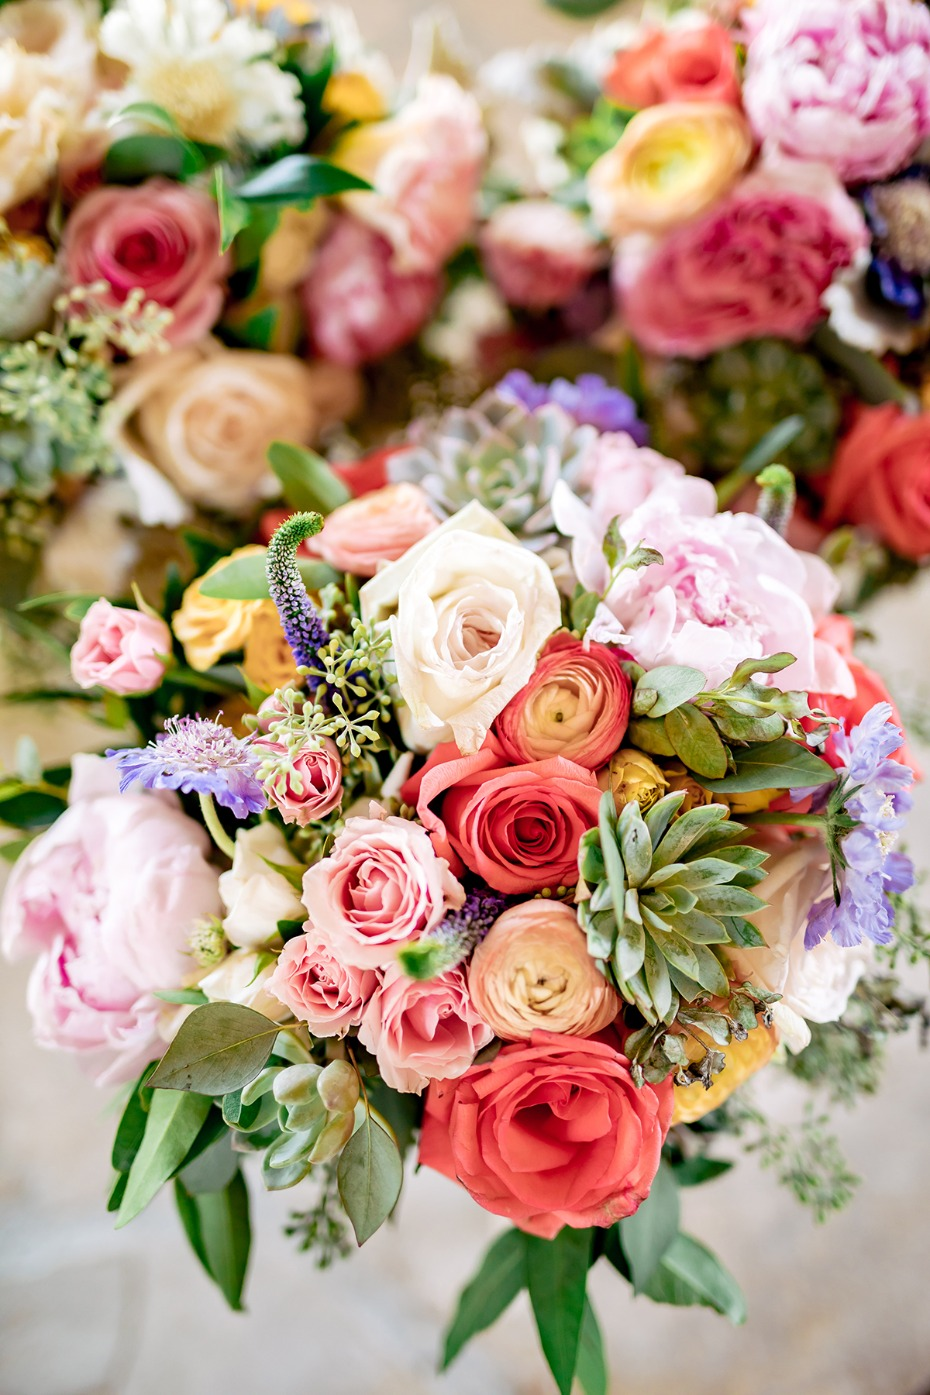 Springtime wedding bouquets